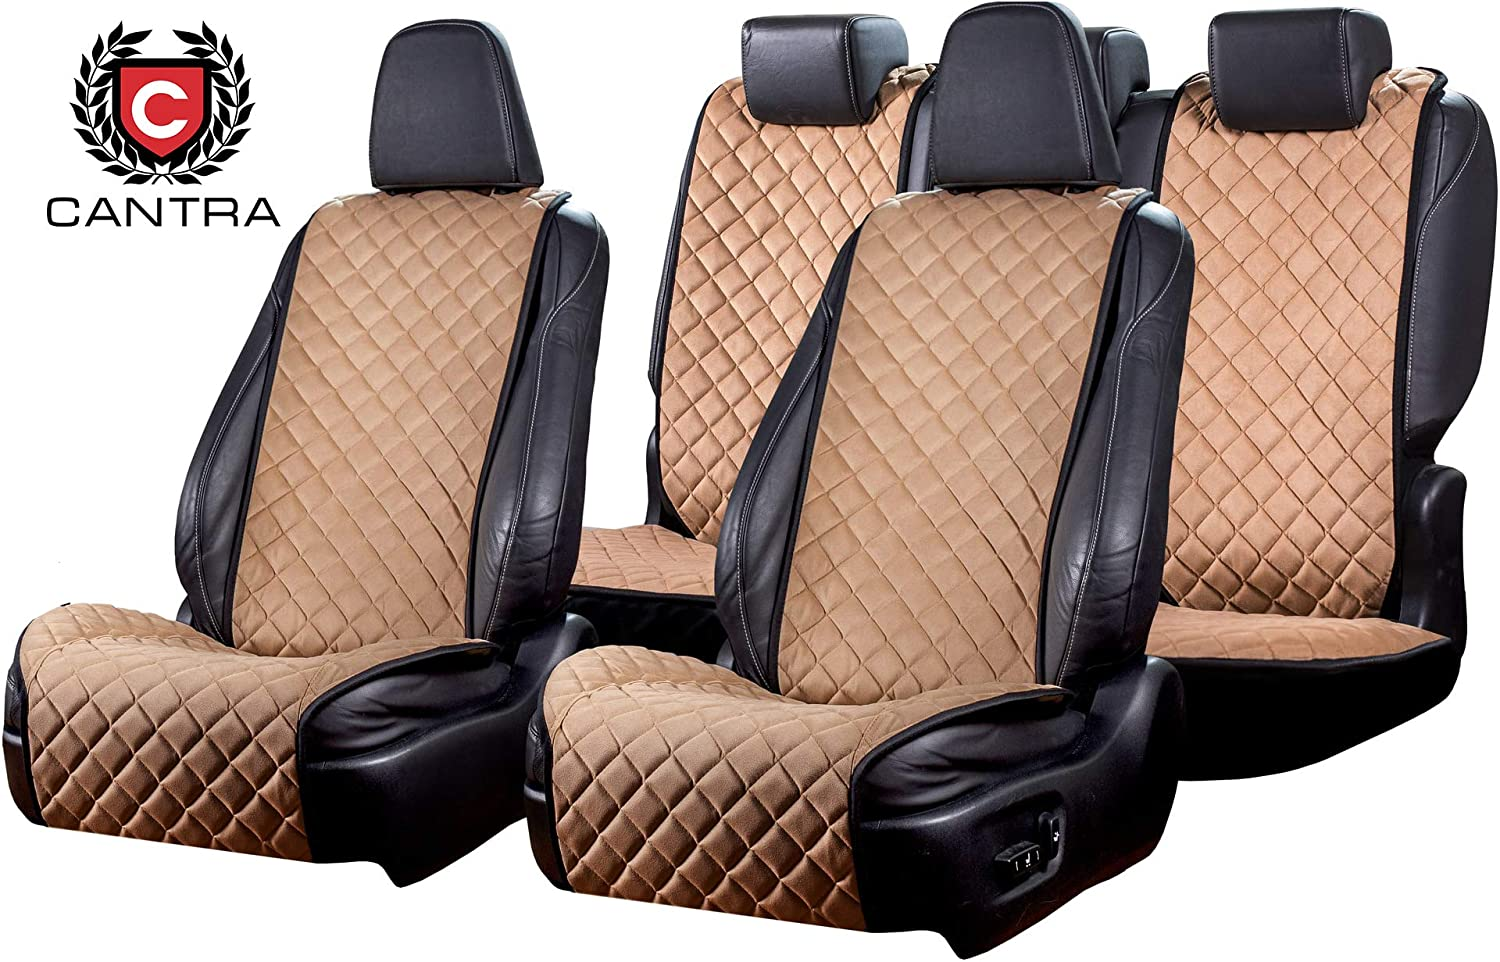 Light Brown Extra Durable /& Long Lasting Premium Car Seat Covers Full Set Comfortable Easy Installation Cantra Z-Model 100/% Hand Made of Quality Fabric Materials Universal Fit